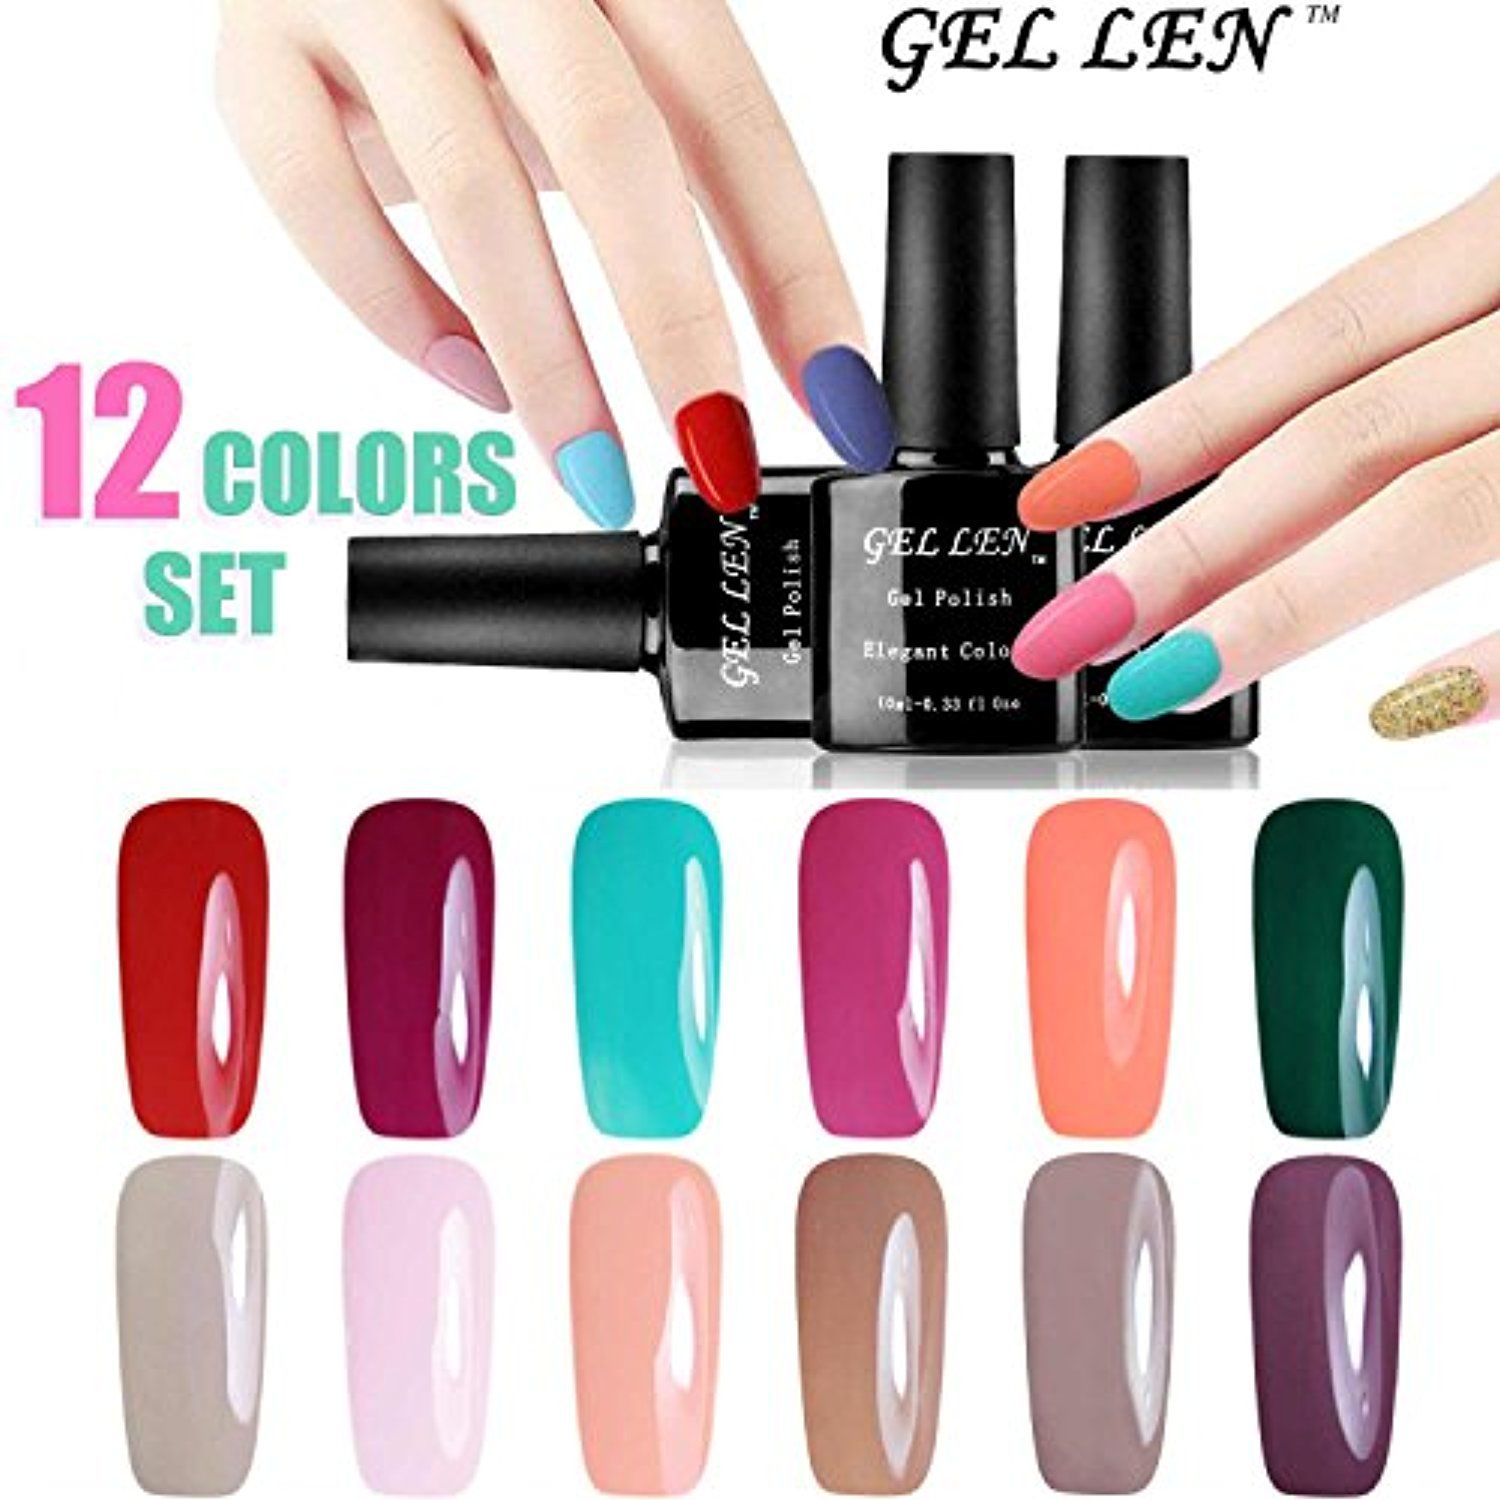 Gellen UV Gel Nail Polish 12 Colors Kit, Nail Art Home Salon Gift ...